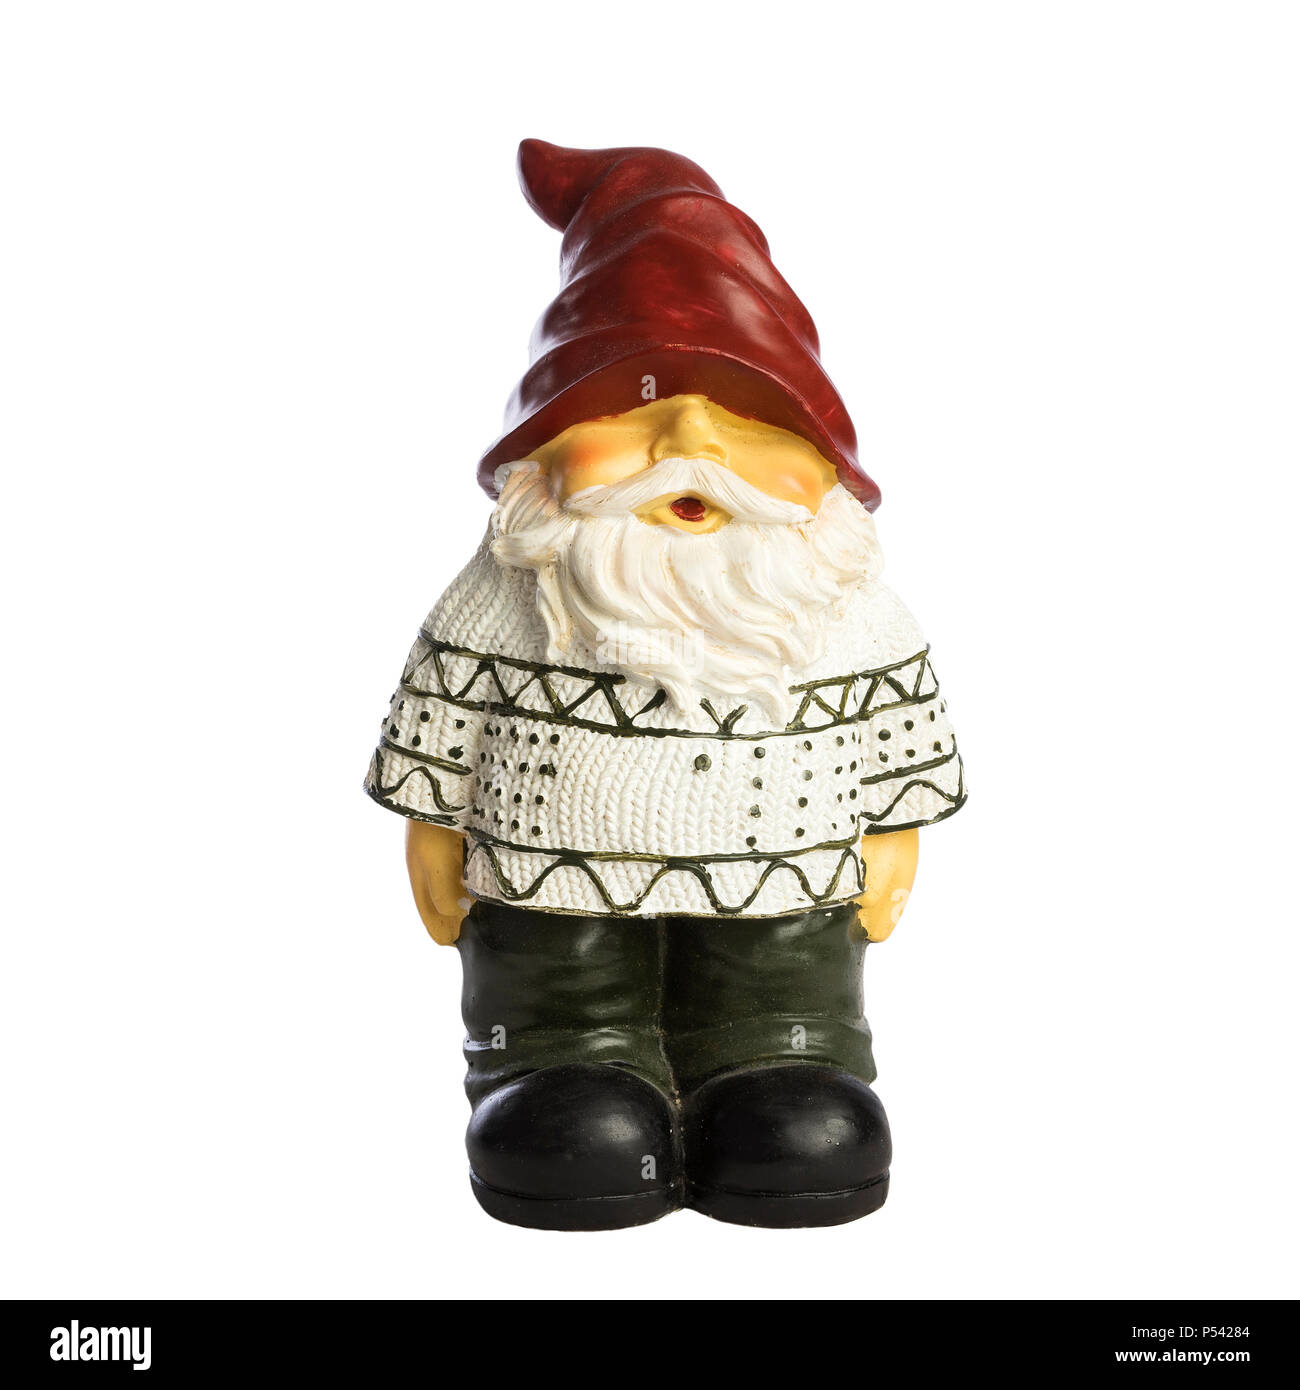 Santa Claus statue on white background. Nice christmas decoration. Male old man with white beard and red hat. Funny kind guy. - Stock Image